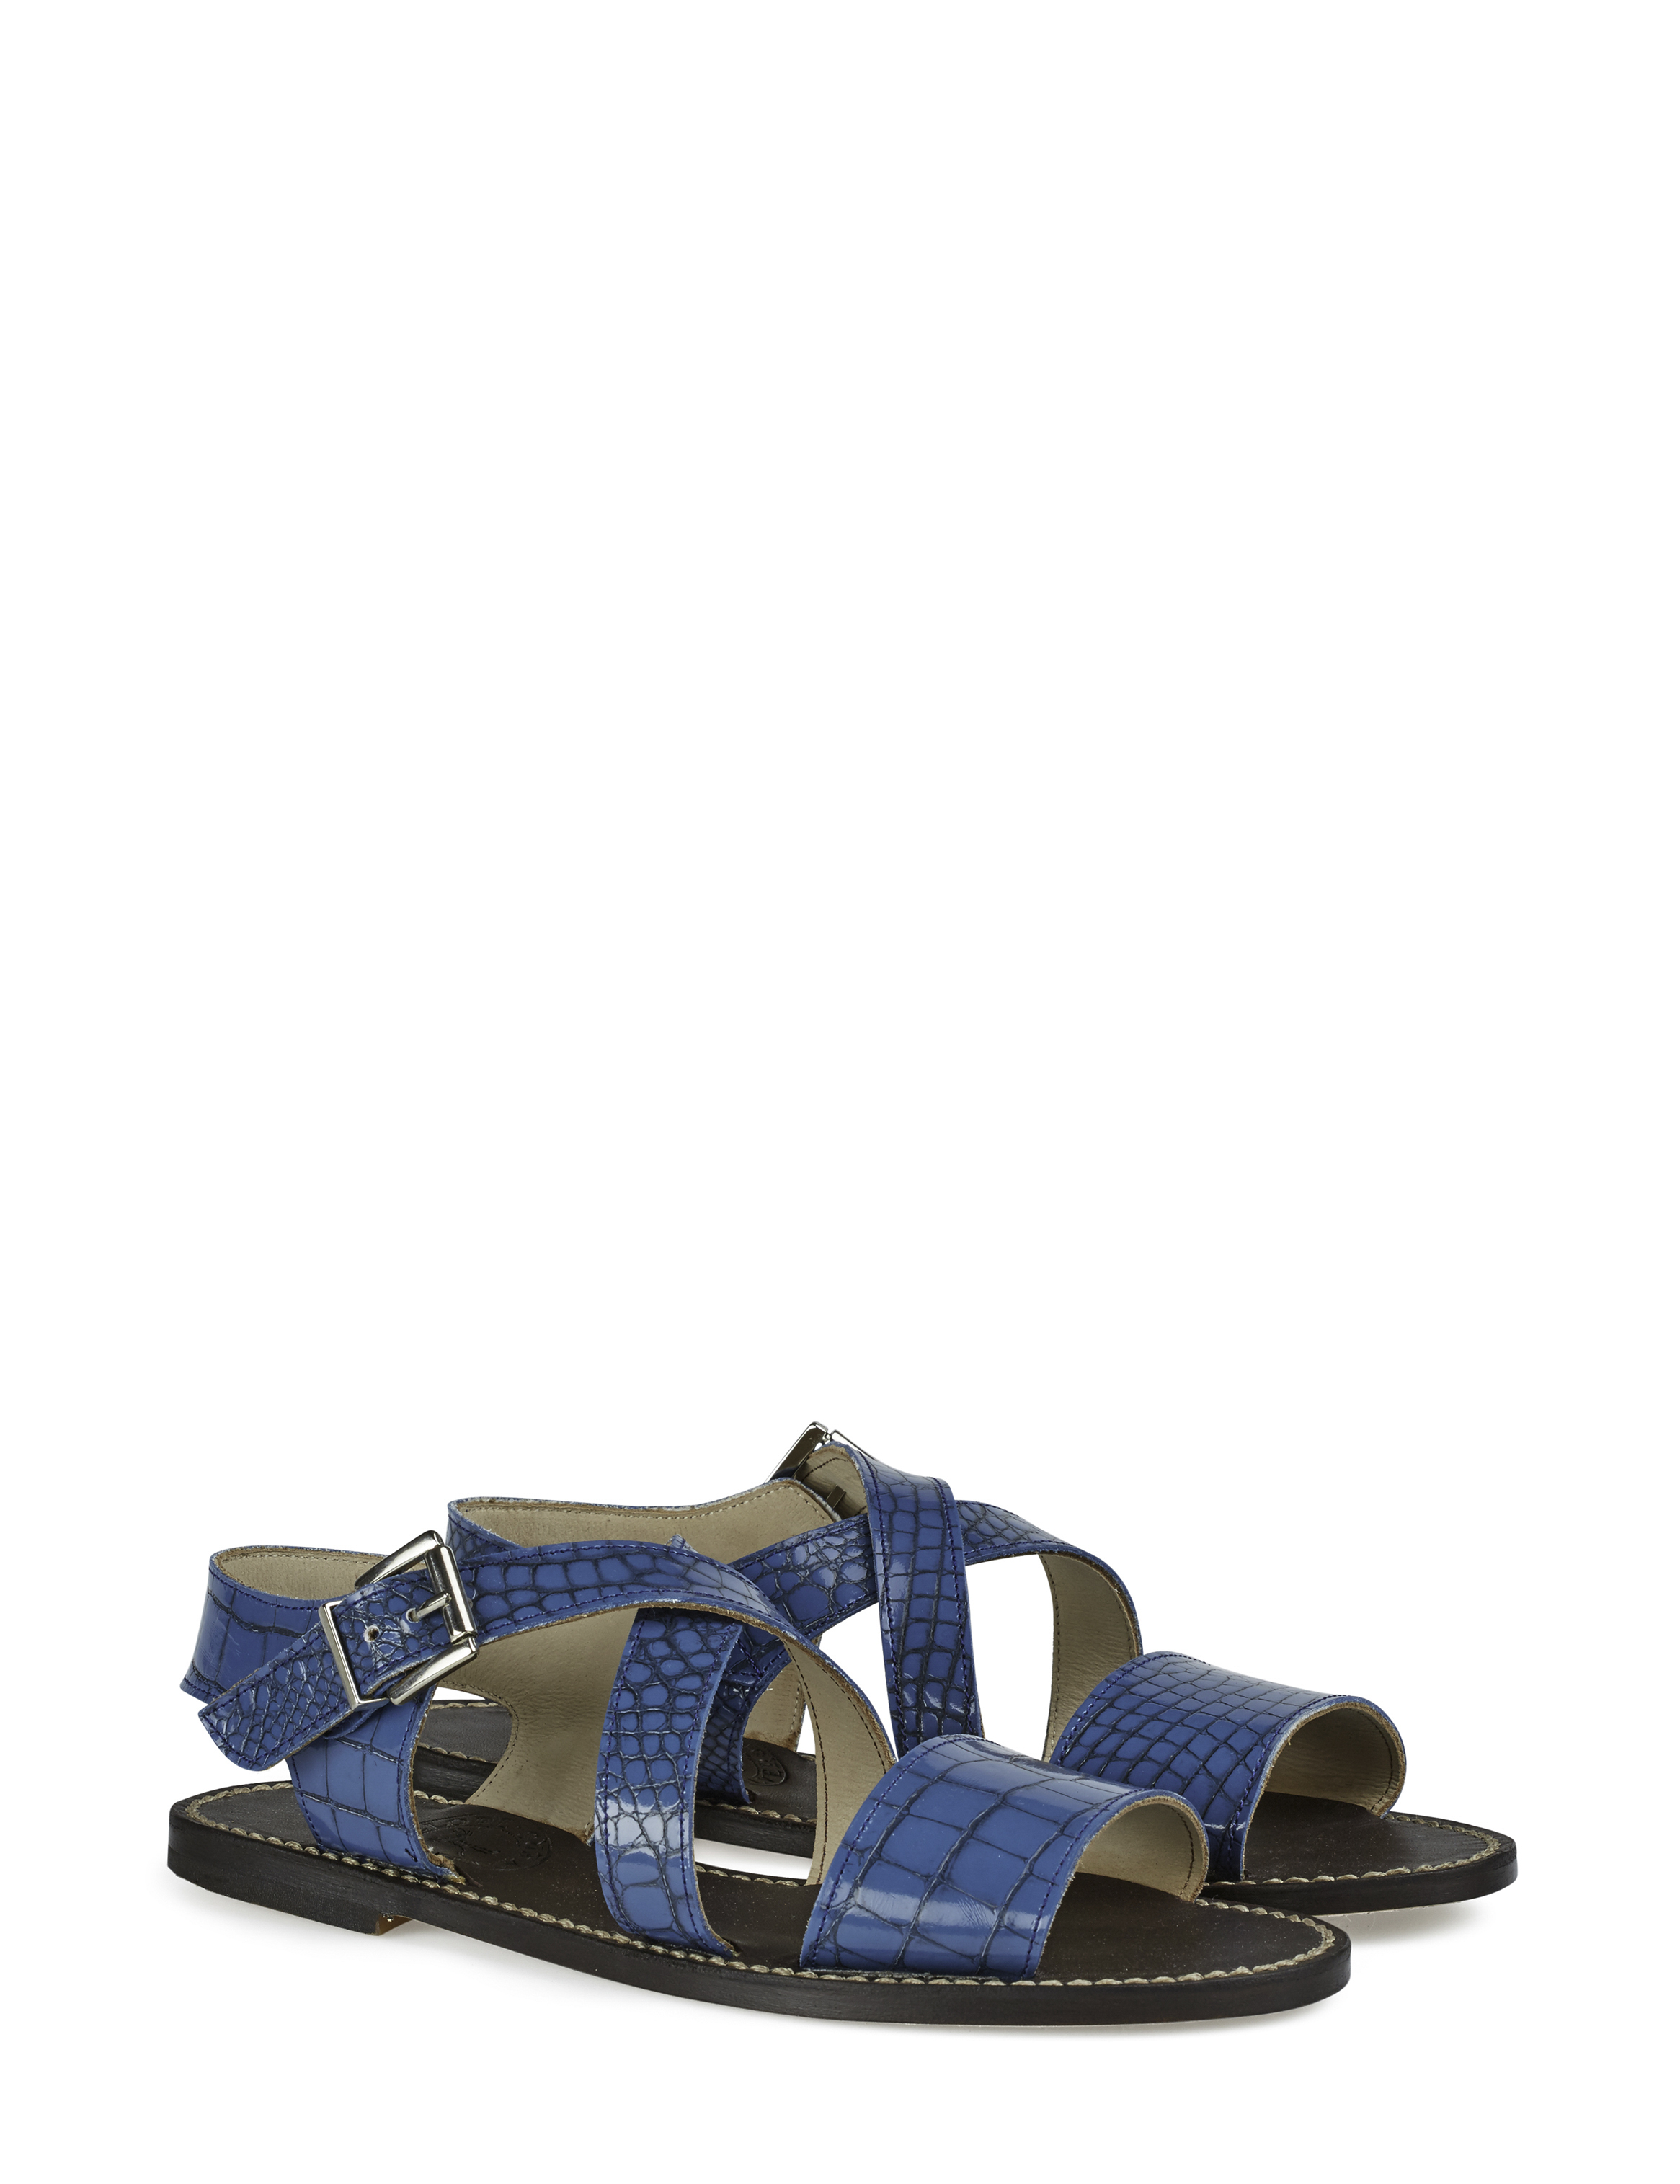 ALBA CROC flat leather sandal 1